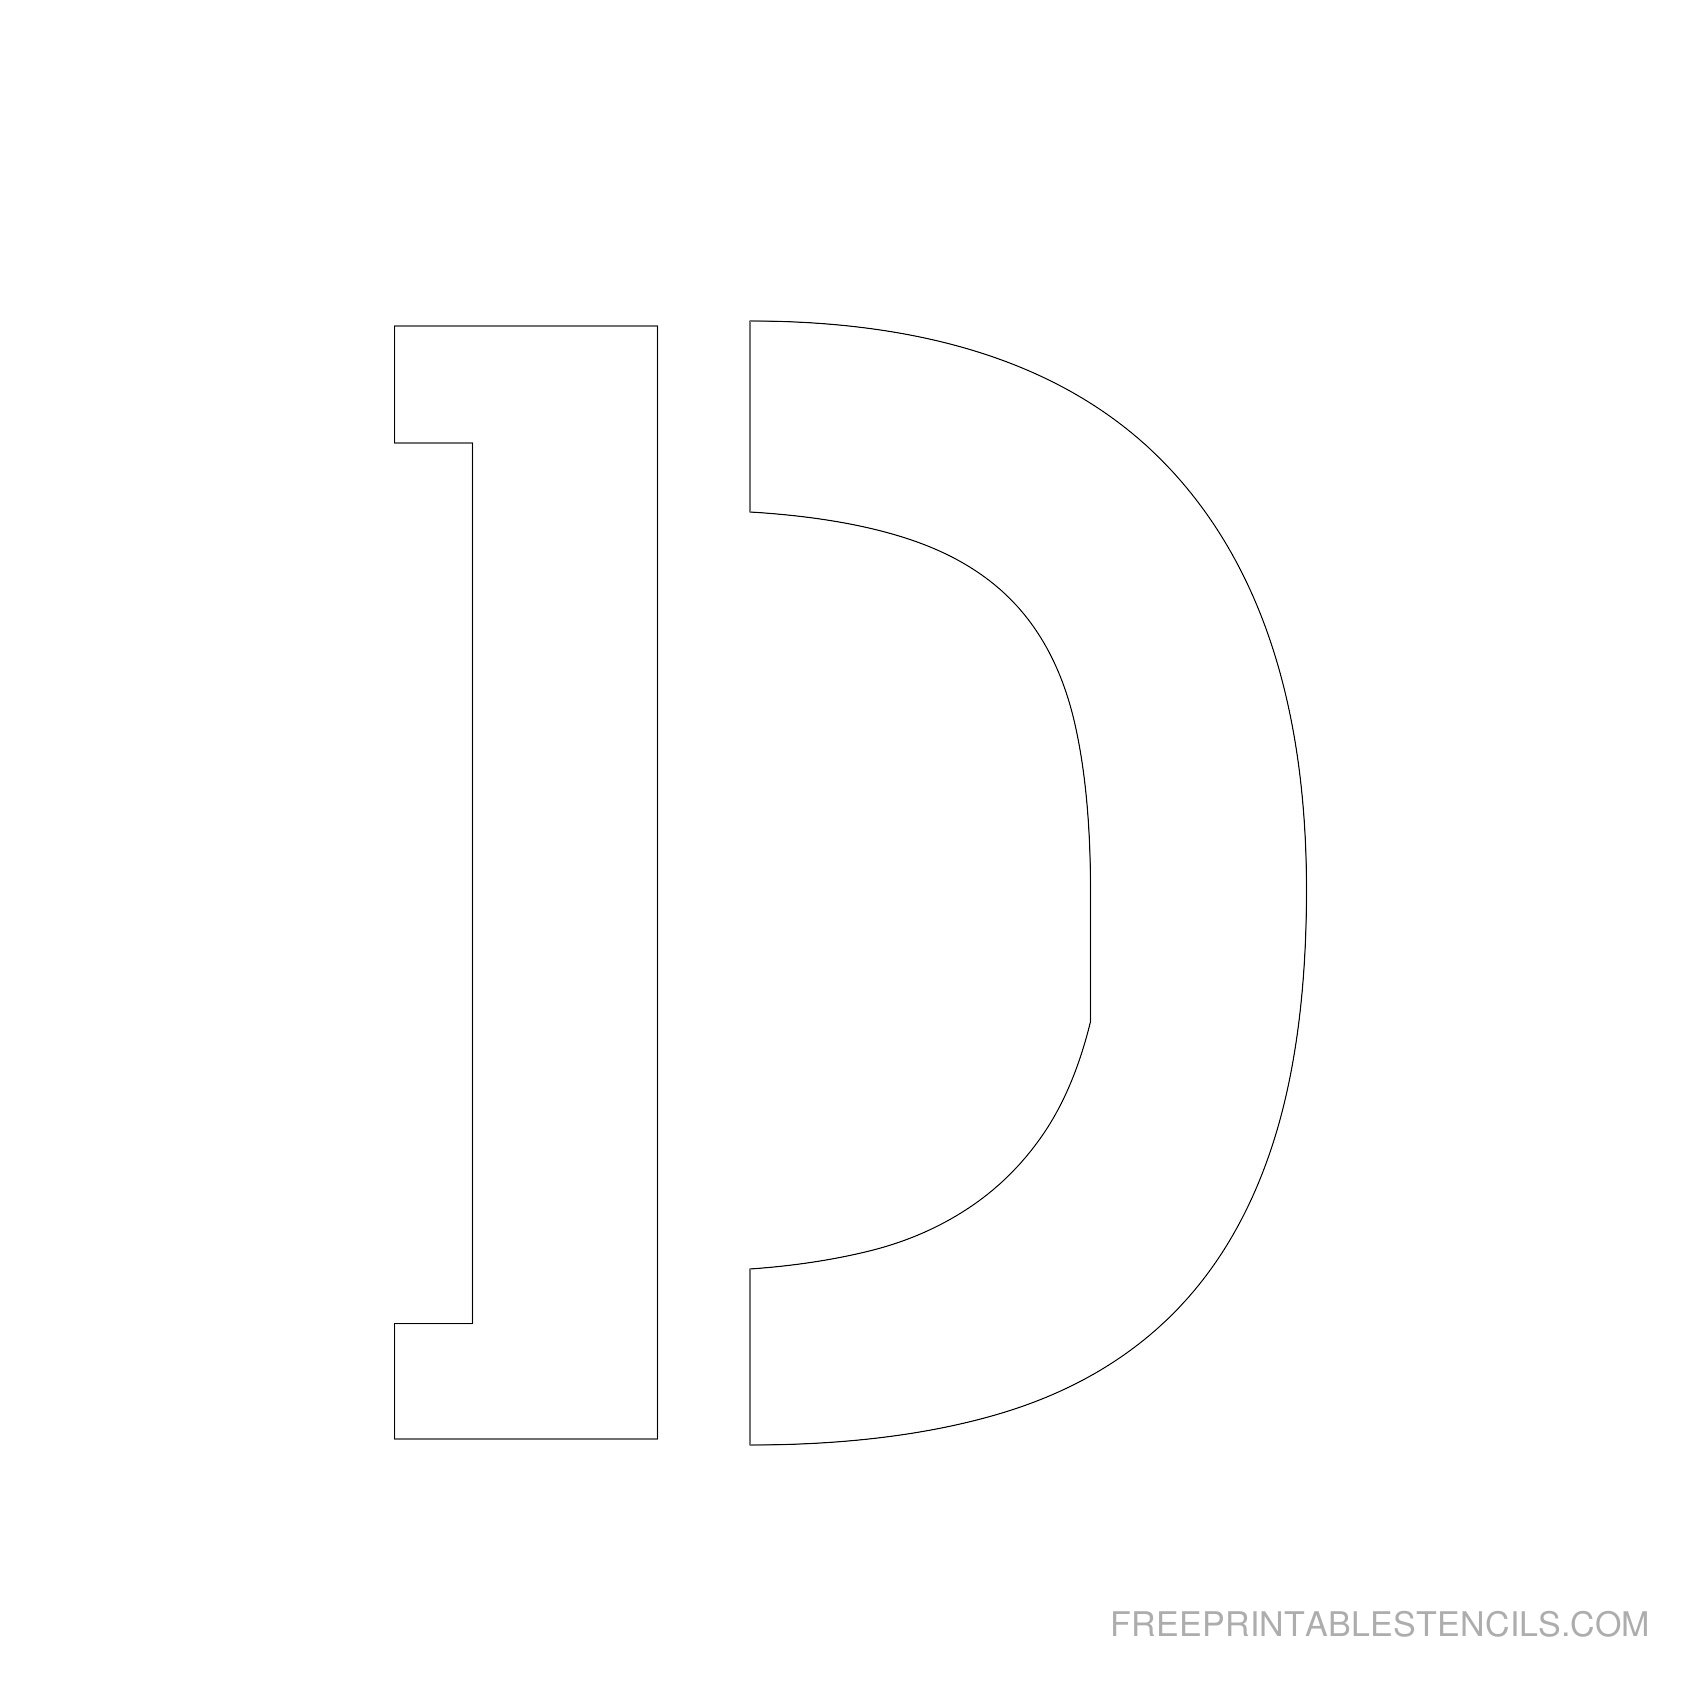 Letter Stencils To Print | Free Printable Stencils - Free Printable Alphabet Stencils Templates